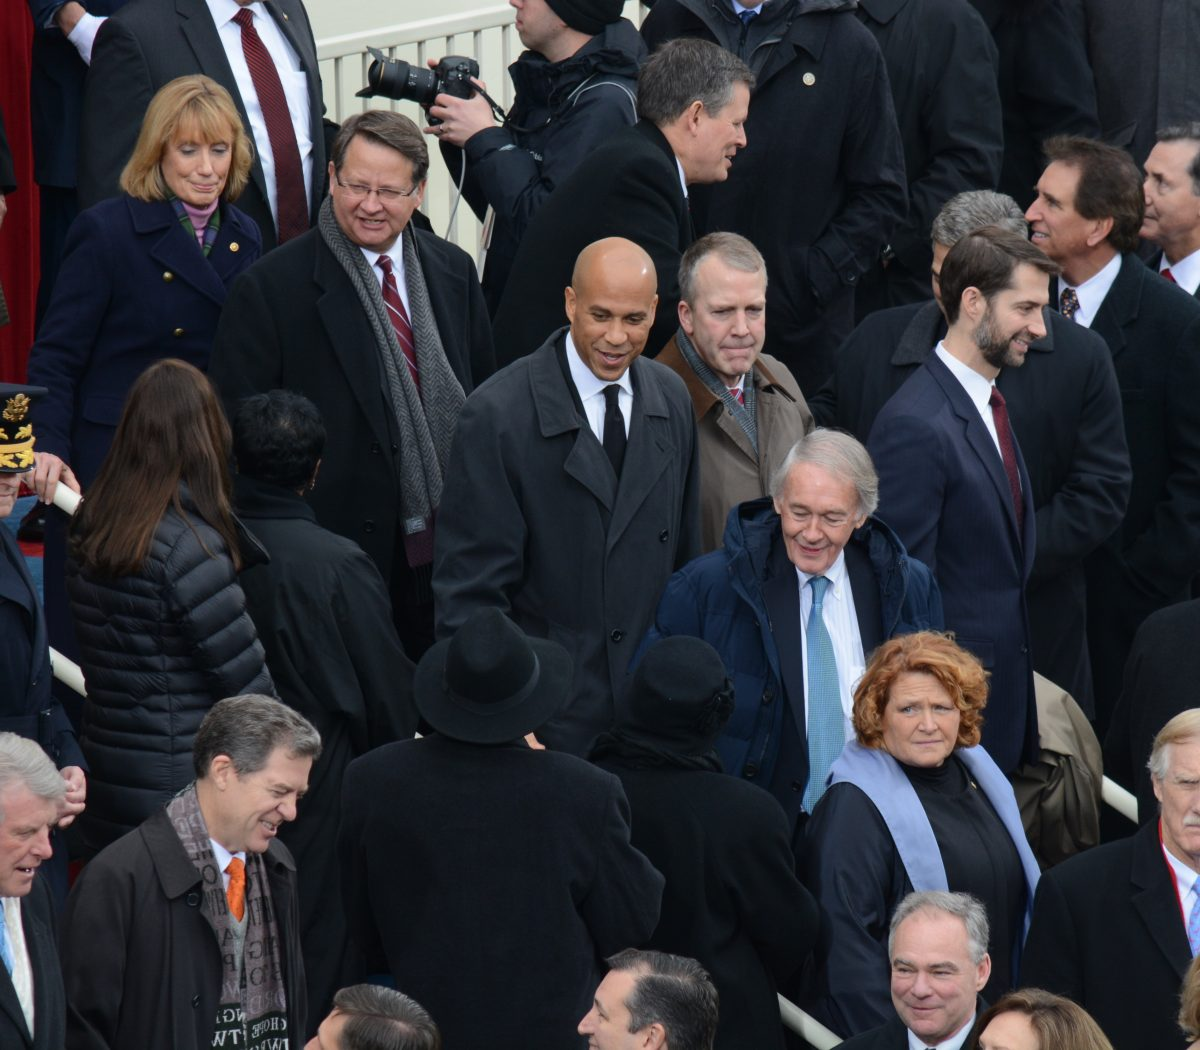 Senator Cory Booker arrives at the 58th Presidential Inauguration on January 20, 2017. /Photo by Roy Lewis